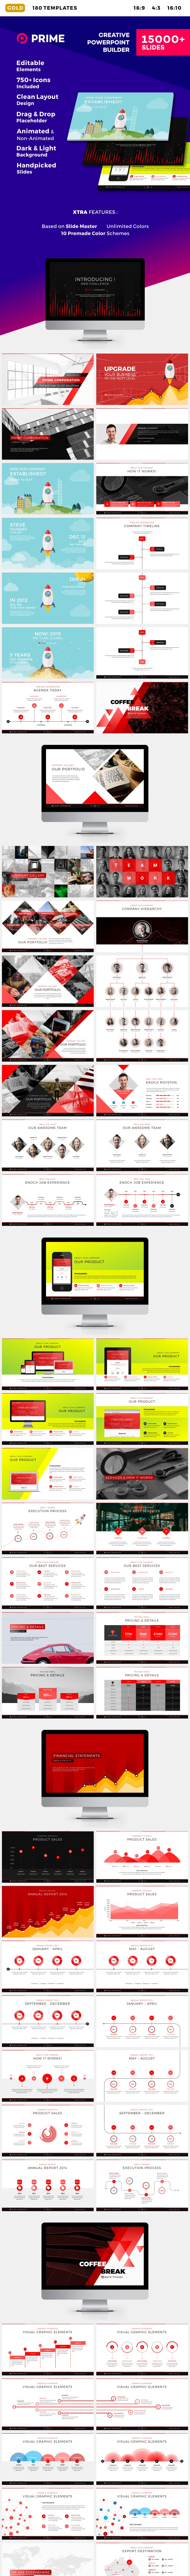 Prime - Creative PowerPoint Builder - Business PowerPoint Templates